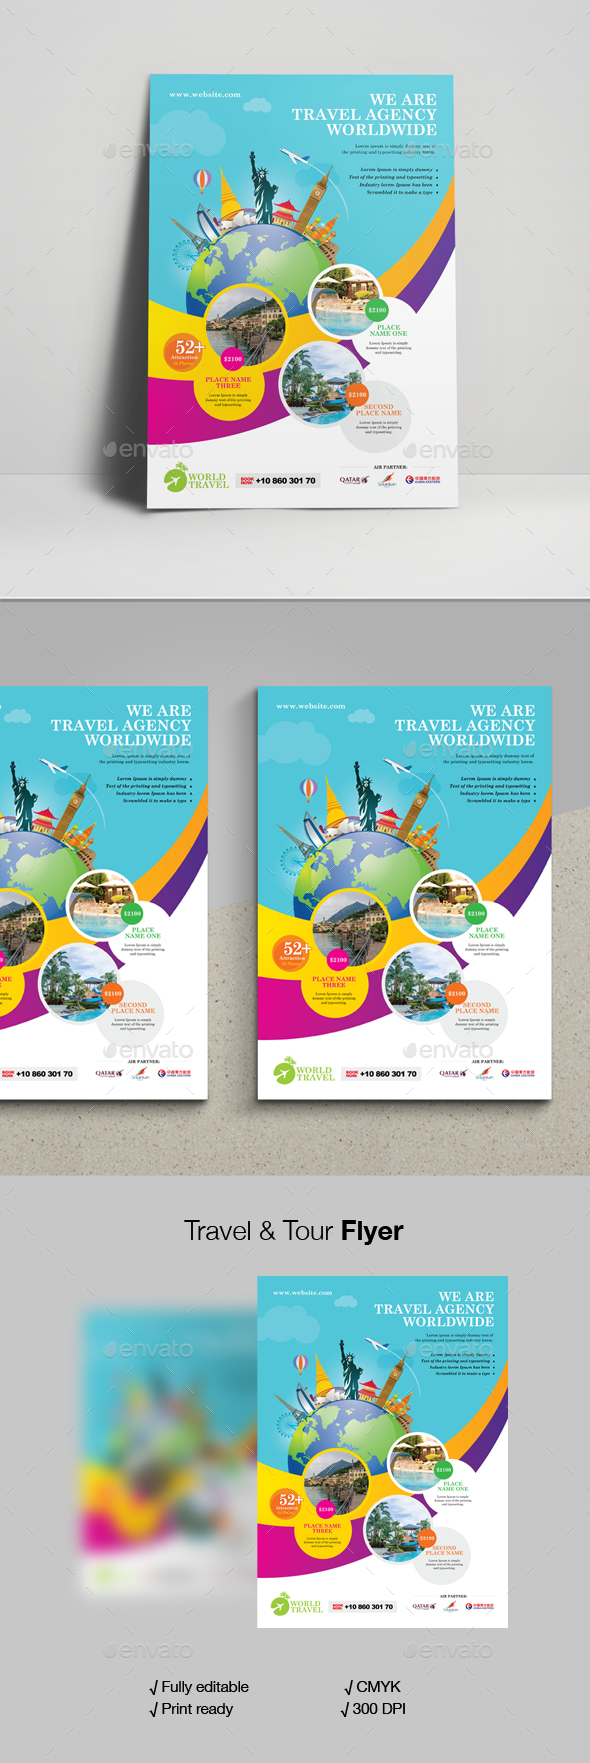 Travel & Tour Flyer - Corporate Flyers